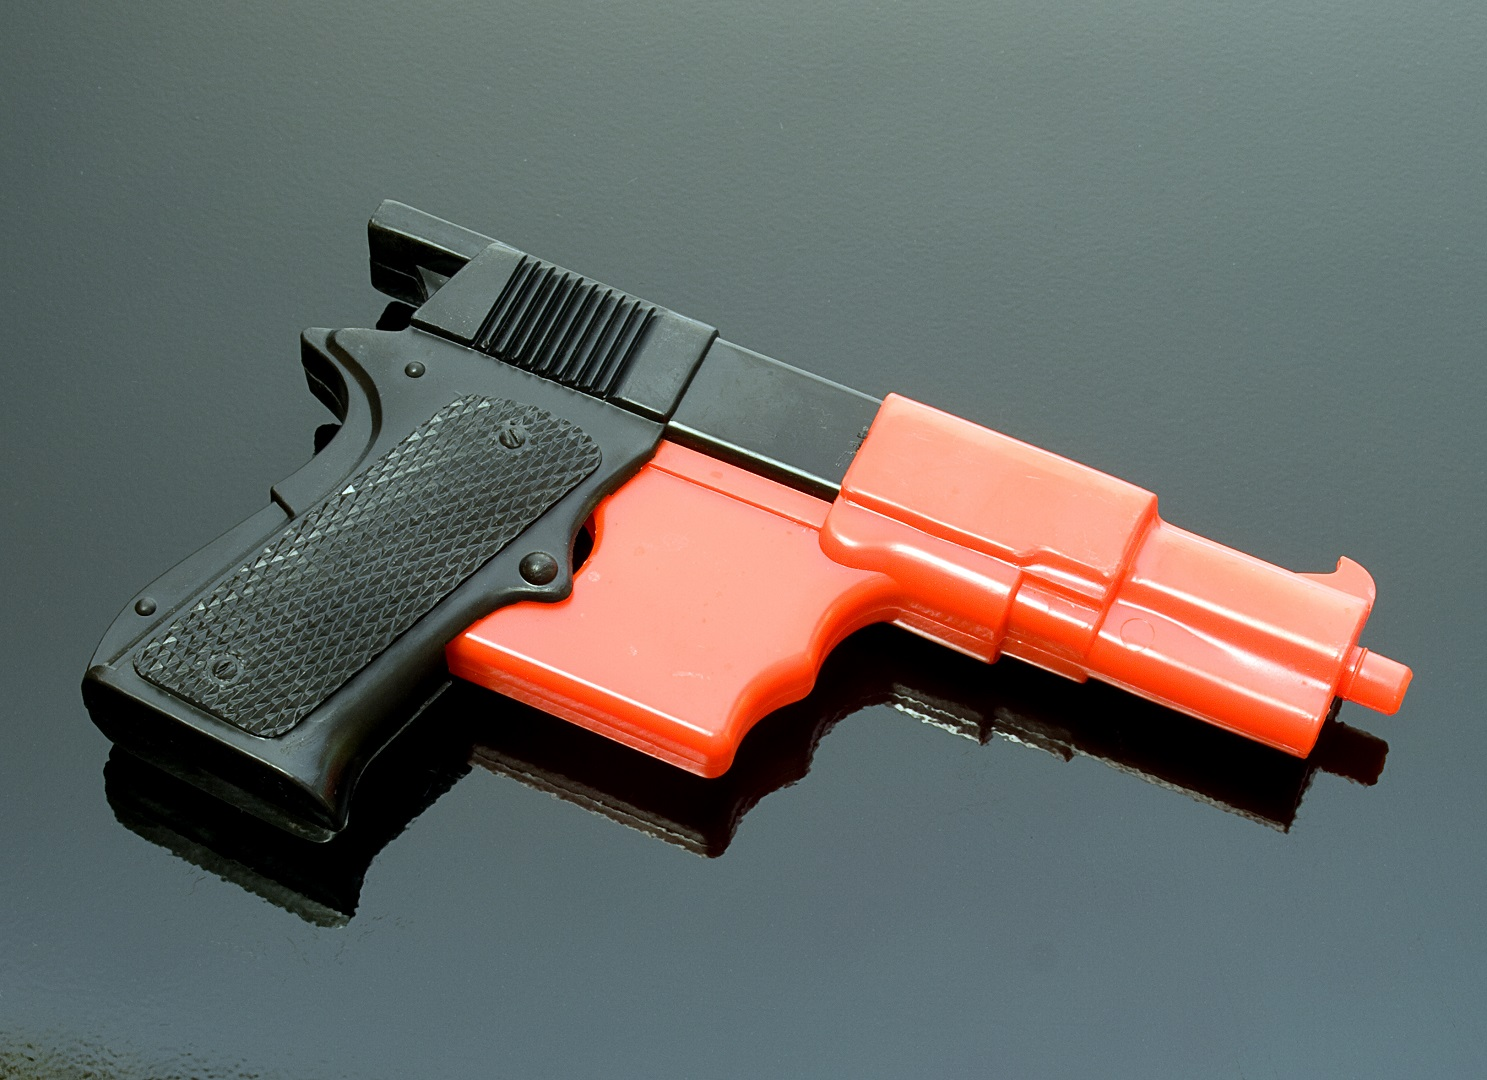 Town Encourages Kids to Swap Toy Guns for Something Else: 'Saying No to Guns Is Important'